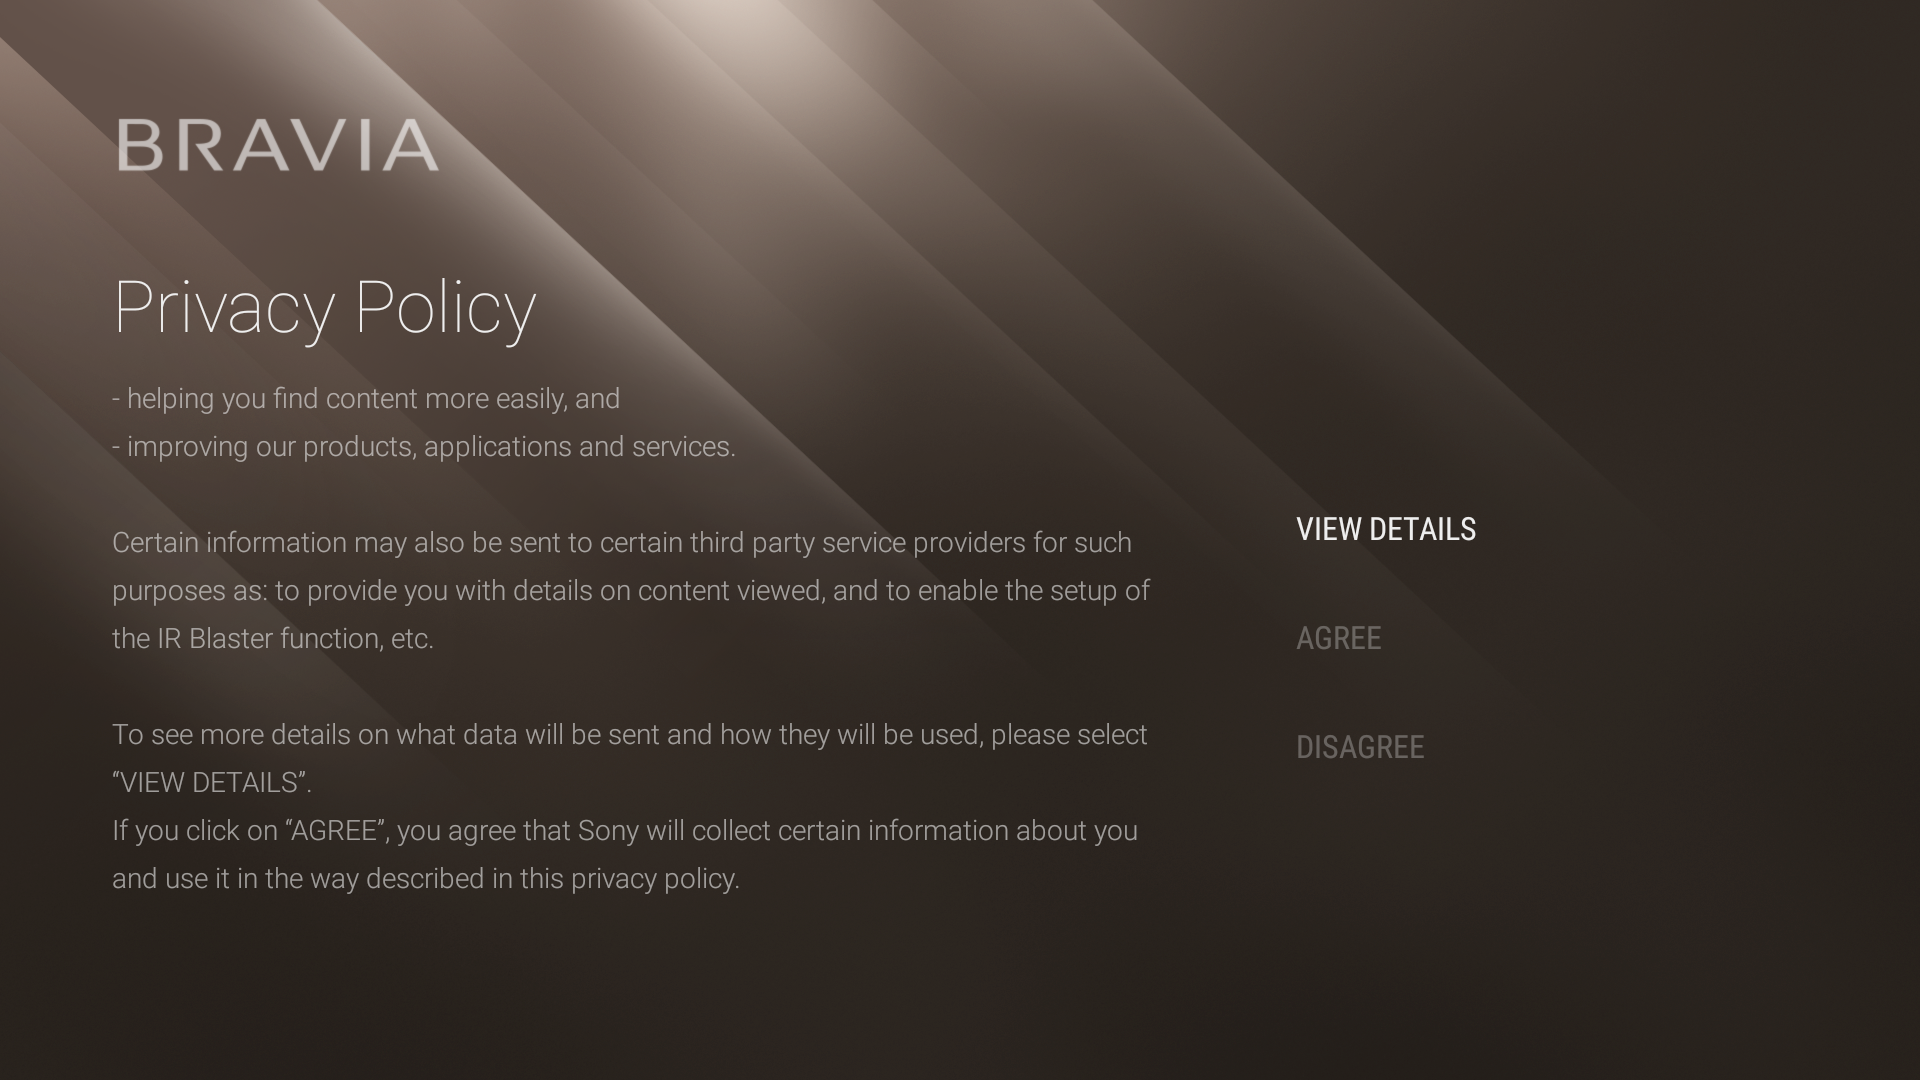 Android - General privacy policy